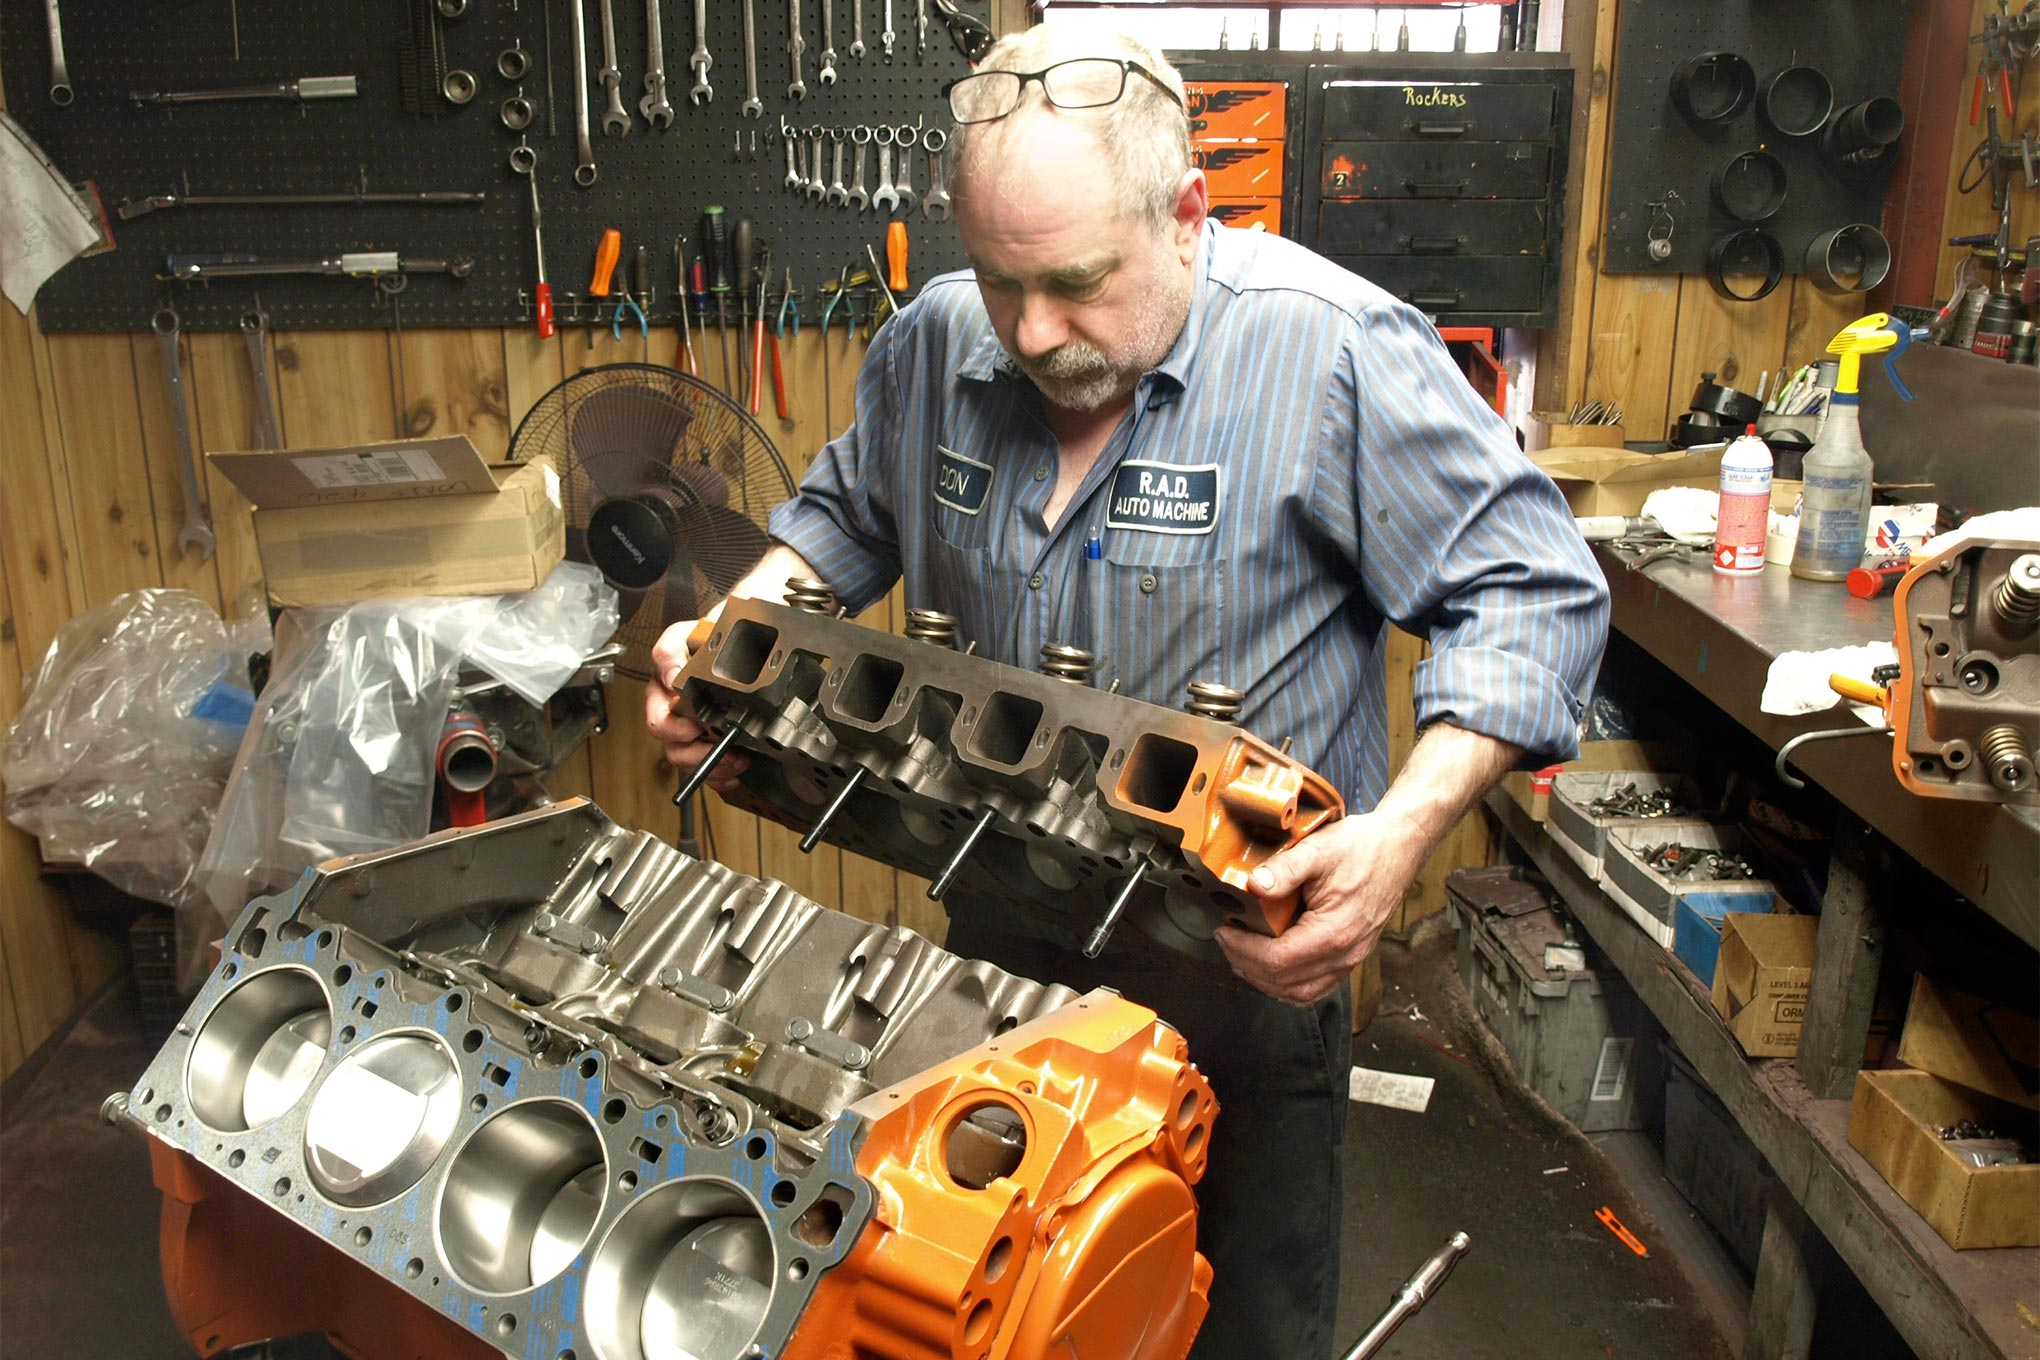 With the deck studs in place, Donnie sets the heads onto the block. Note the protruding piston dome on cylinder No. 6. Head gaskets are Fel-Pro (PN 1106) with a 0.039-inch compressed height. Not shown but vital is a coating of aerosol copper spray sealant to preclude the Hemi's tendency for external coolant leaks at the square passages at the upper end of each deck.